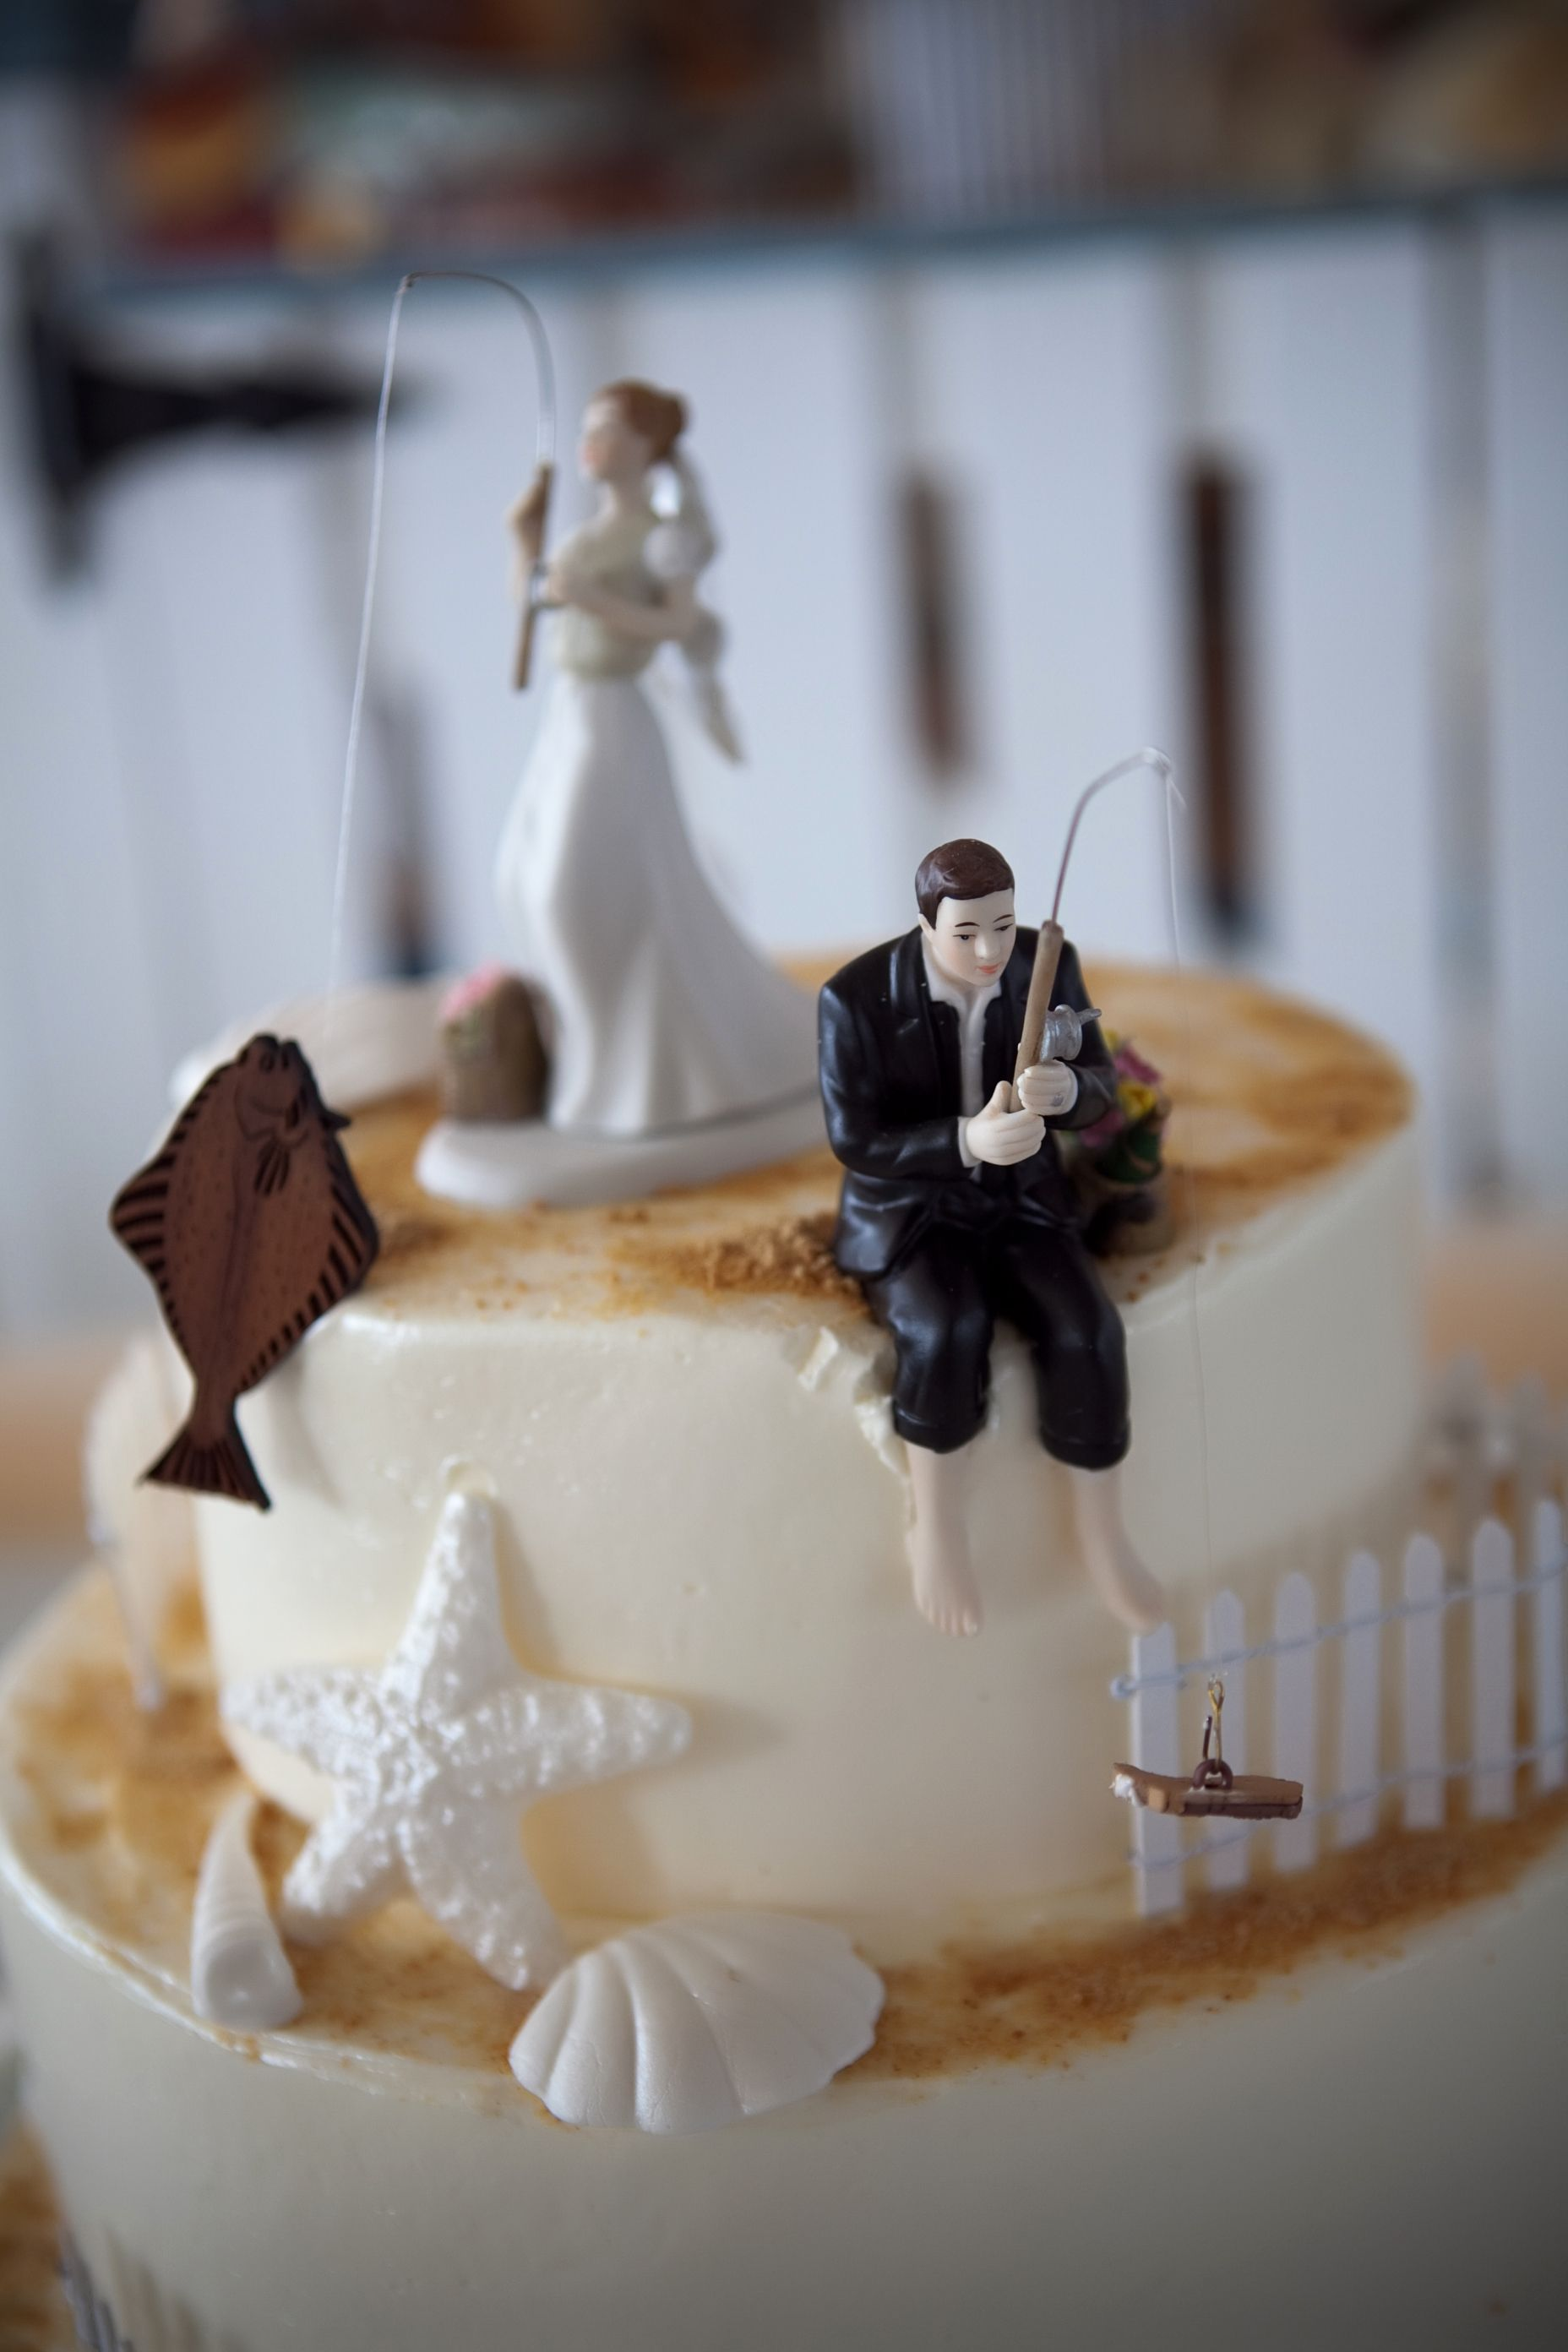 wedding cake toppers funny Fishing Cake toppers from our wedding bride with halibut and groom with boot